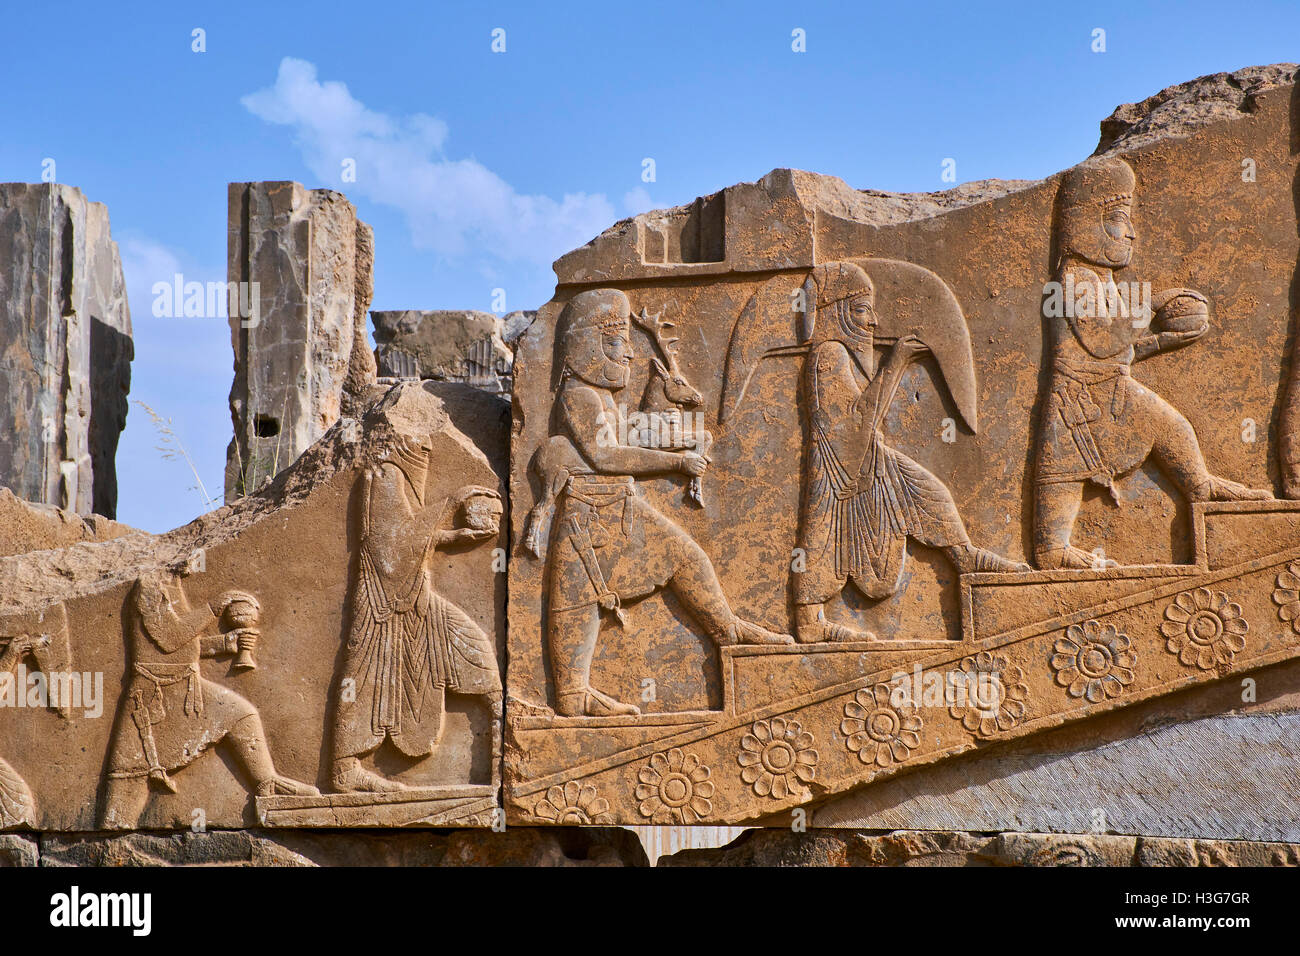 Iran, Fars Province, Persepolis, World Heritage of the UNESCO, Darius 1st palace - Stock Image